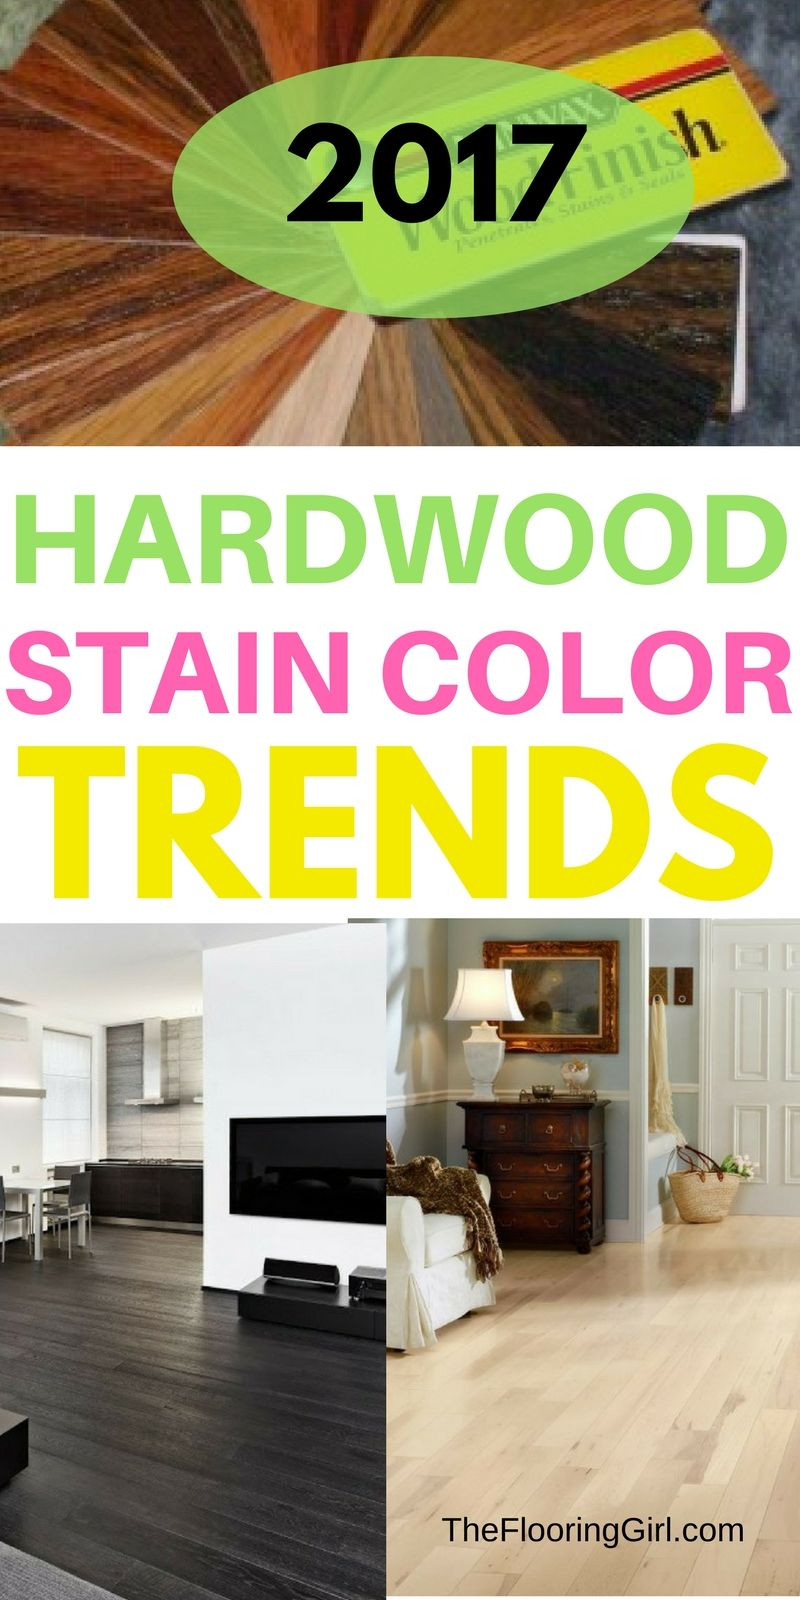 hardwood floor color with white cabinets of hardwood flooring stain color trends 2018 more from the flooring in hardwood flooring stain color trends for 2017 hardwood colors that are in style theflooringgirl com